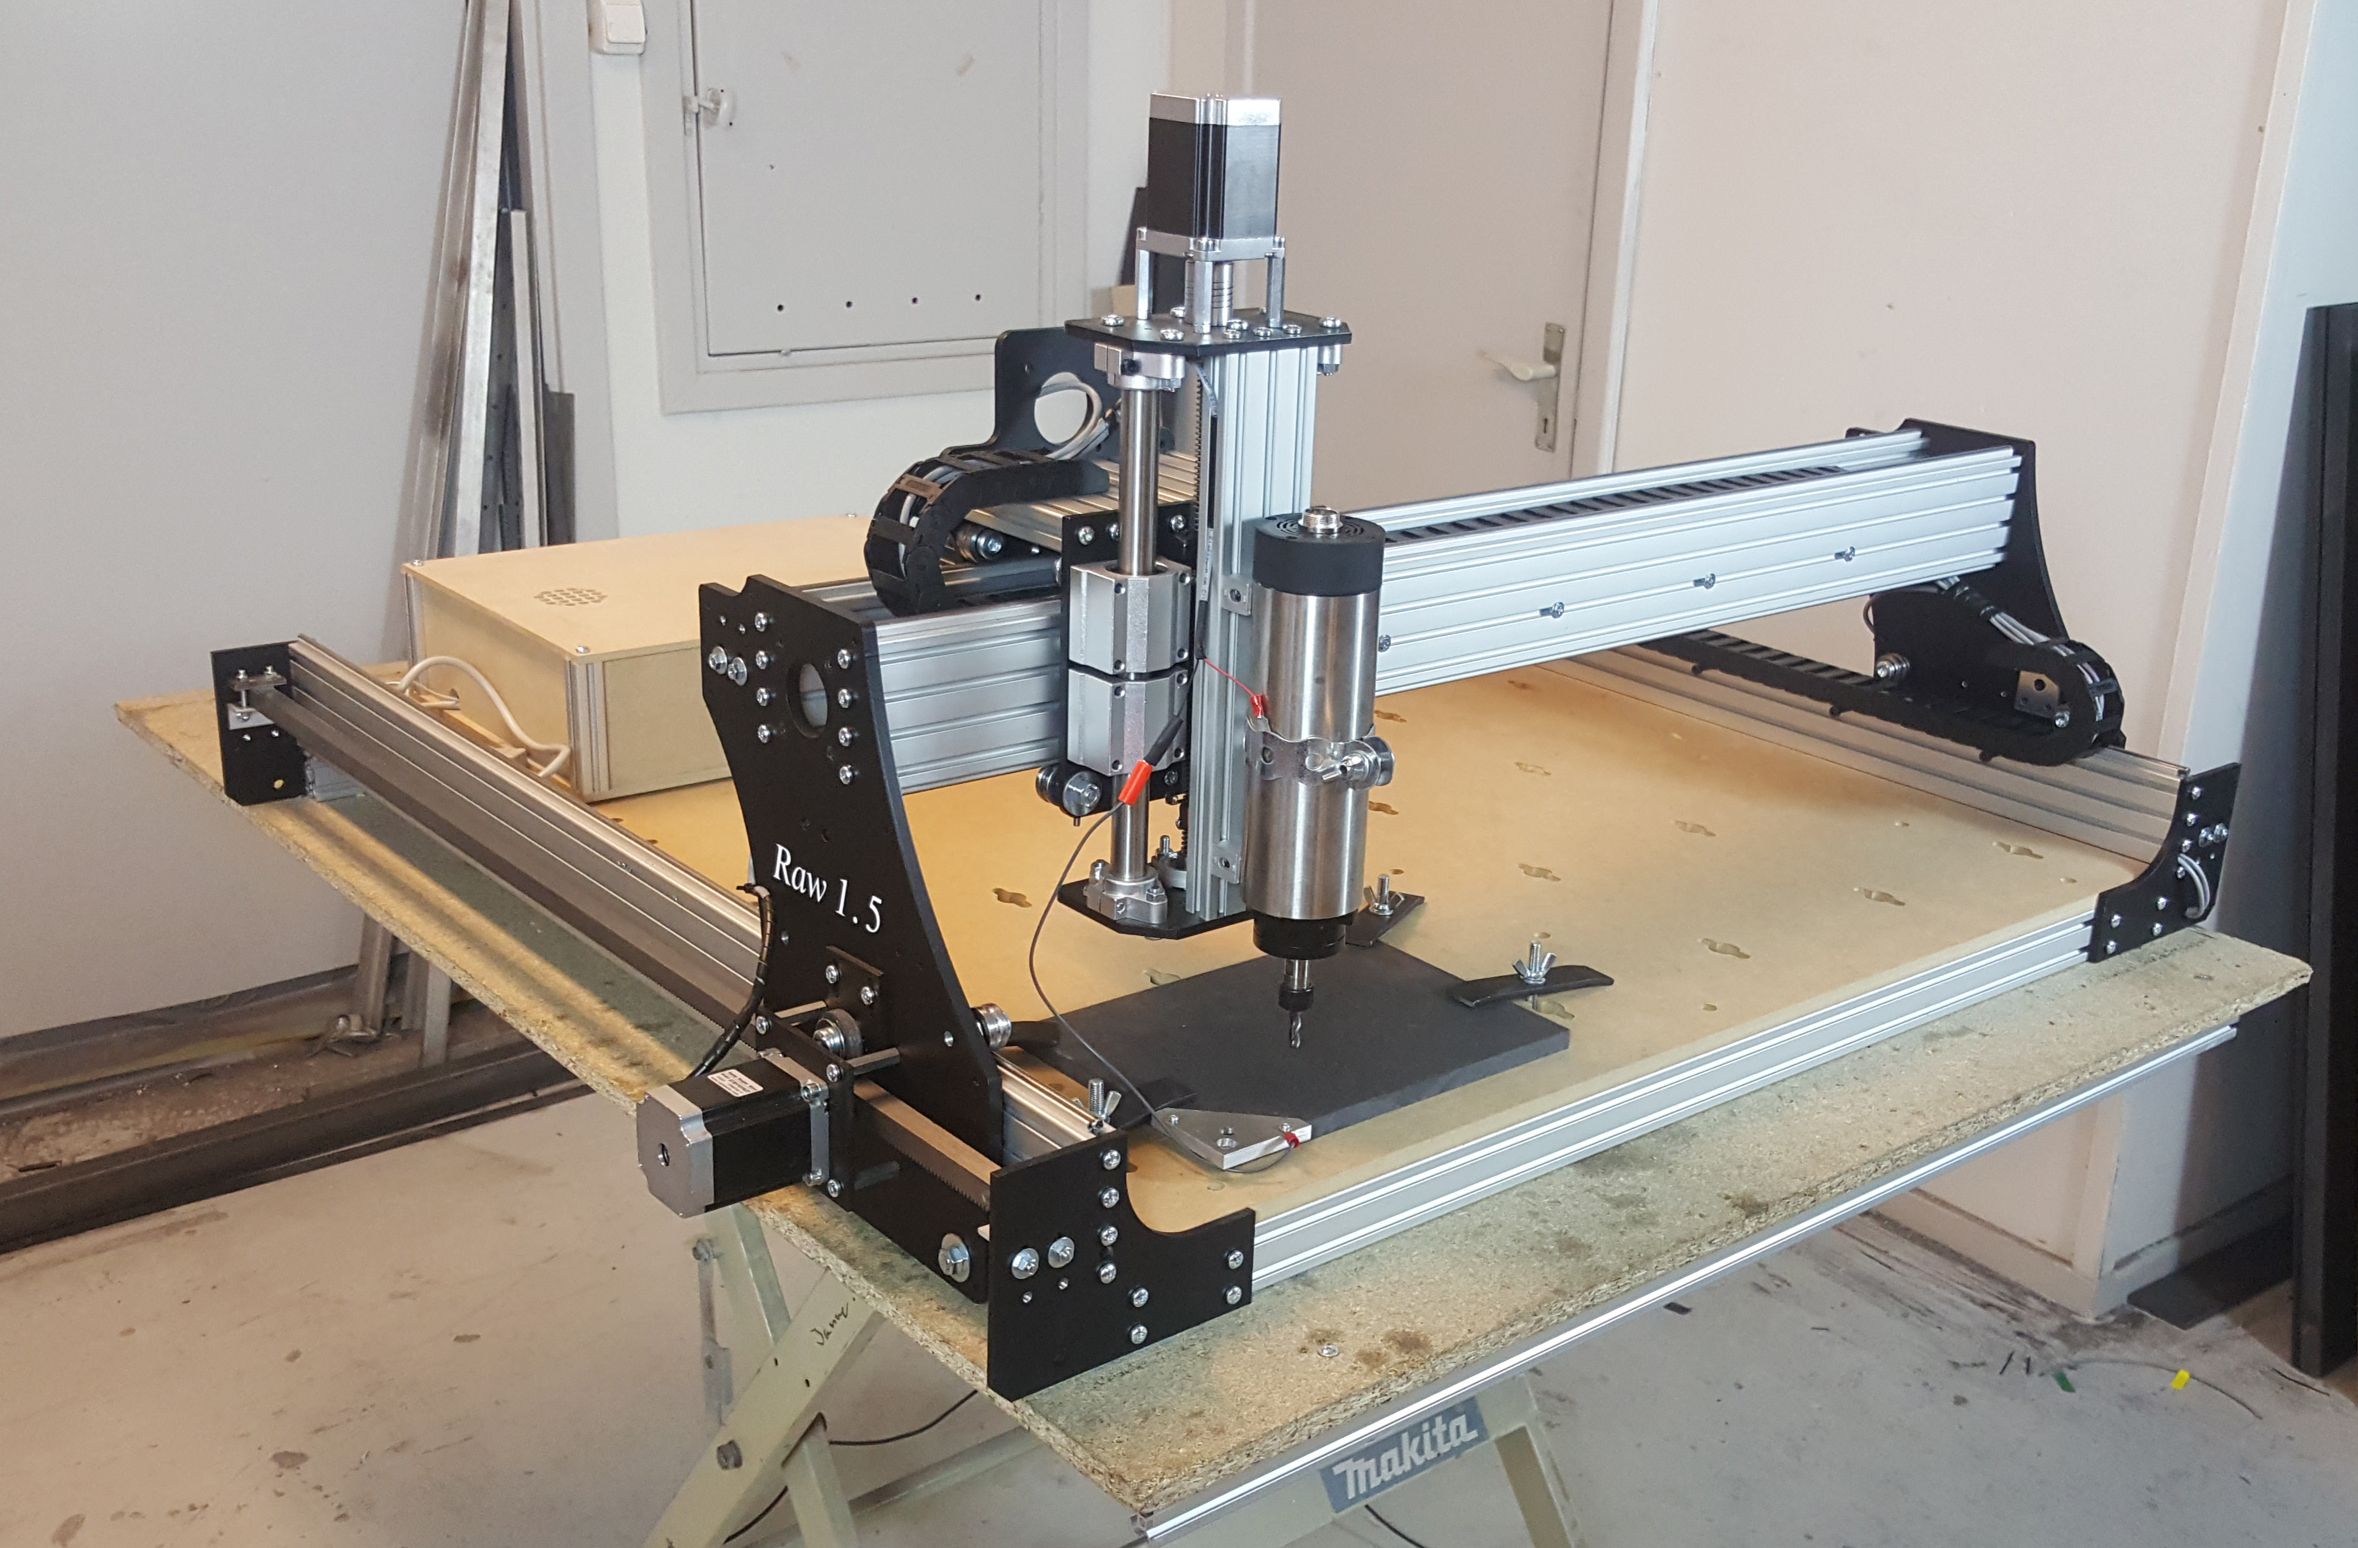 Raw 15 cnc do it yourself kit 100x100cm with racks and pinions product description solutioingenieria Image collections